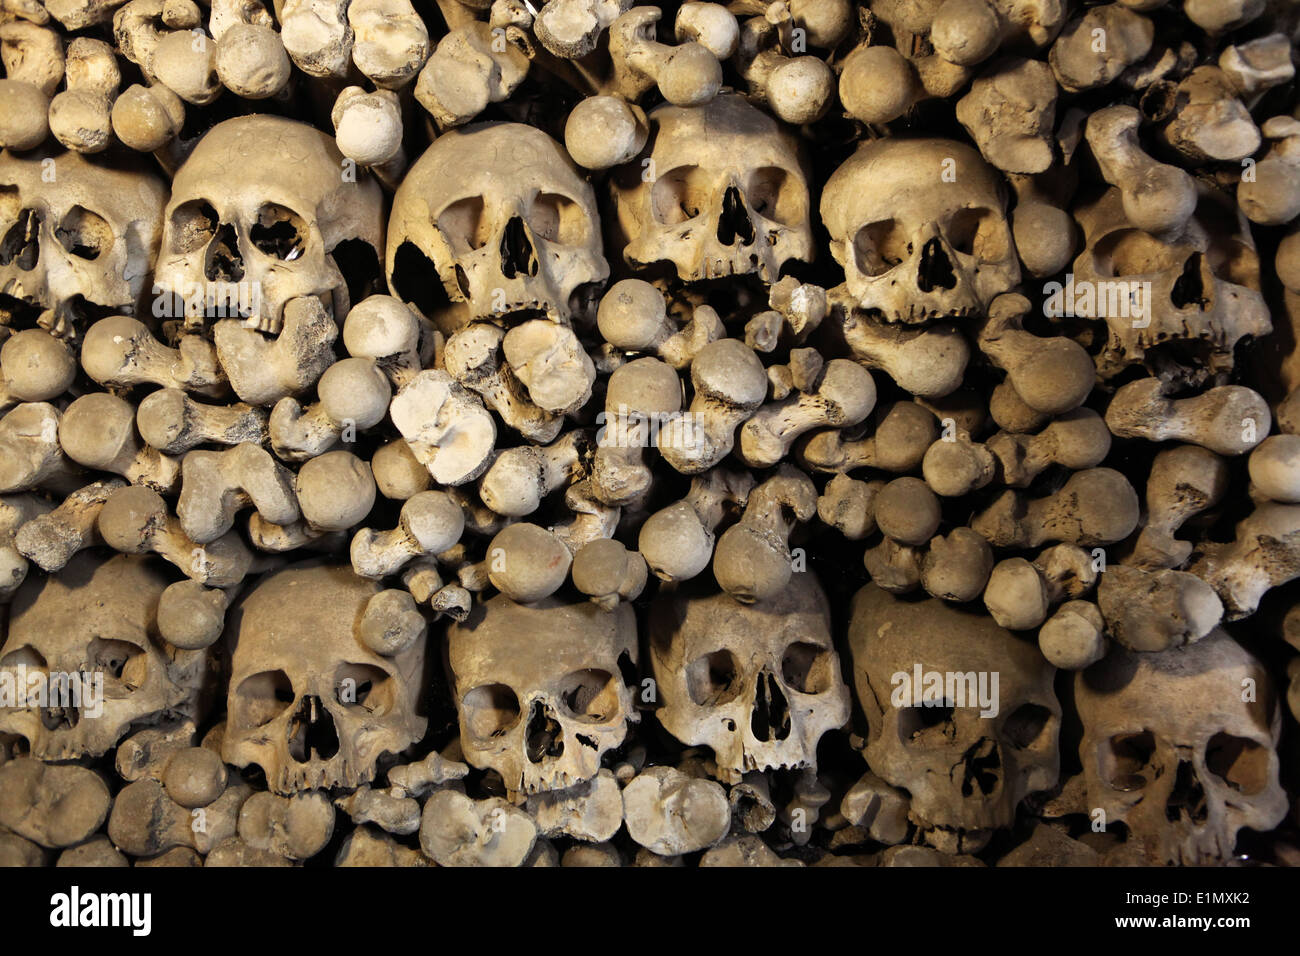 Human bones and skulls in the Sedlec Ossuary in Kutna Hora, Czech Republic. - Stock Image